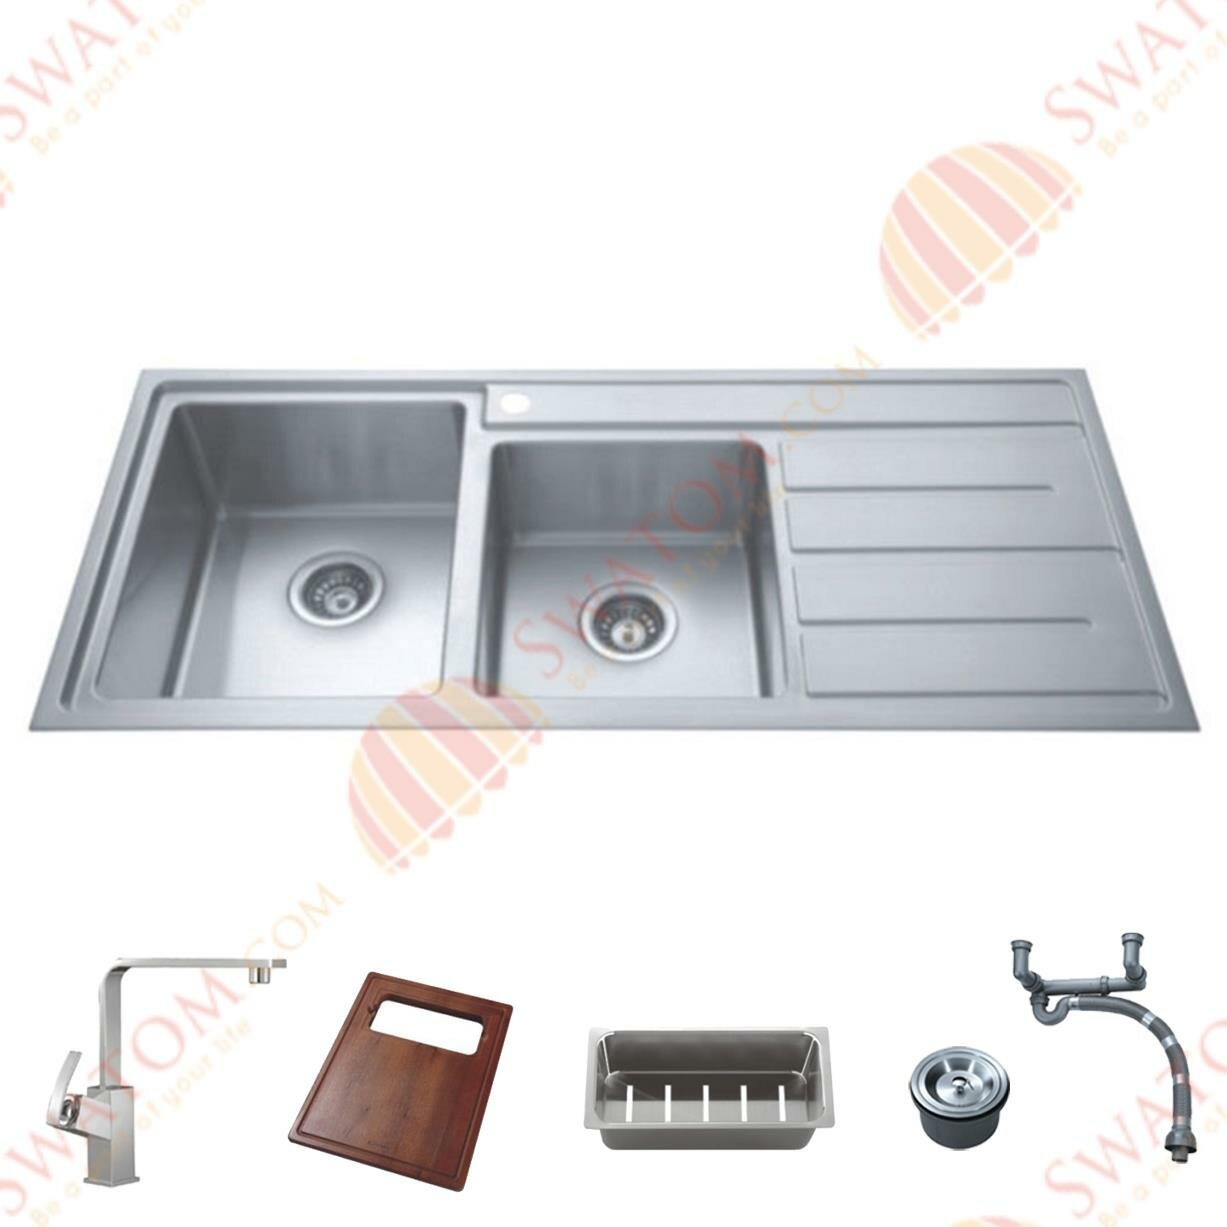 Cozy Kitchen Sinks Stainless Steel for Traditional Kitchen Design: Kitchen Sinks Stainless Steel | Corner Stainless Steel Kitchen Sink | Ss Kitchen Sink